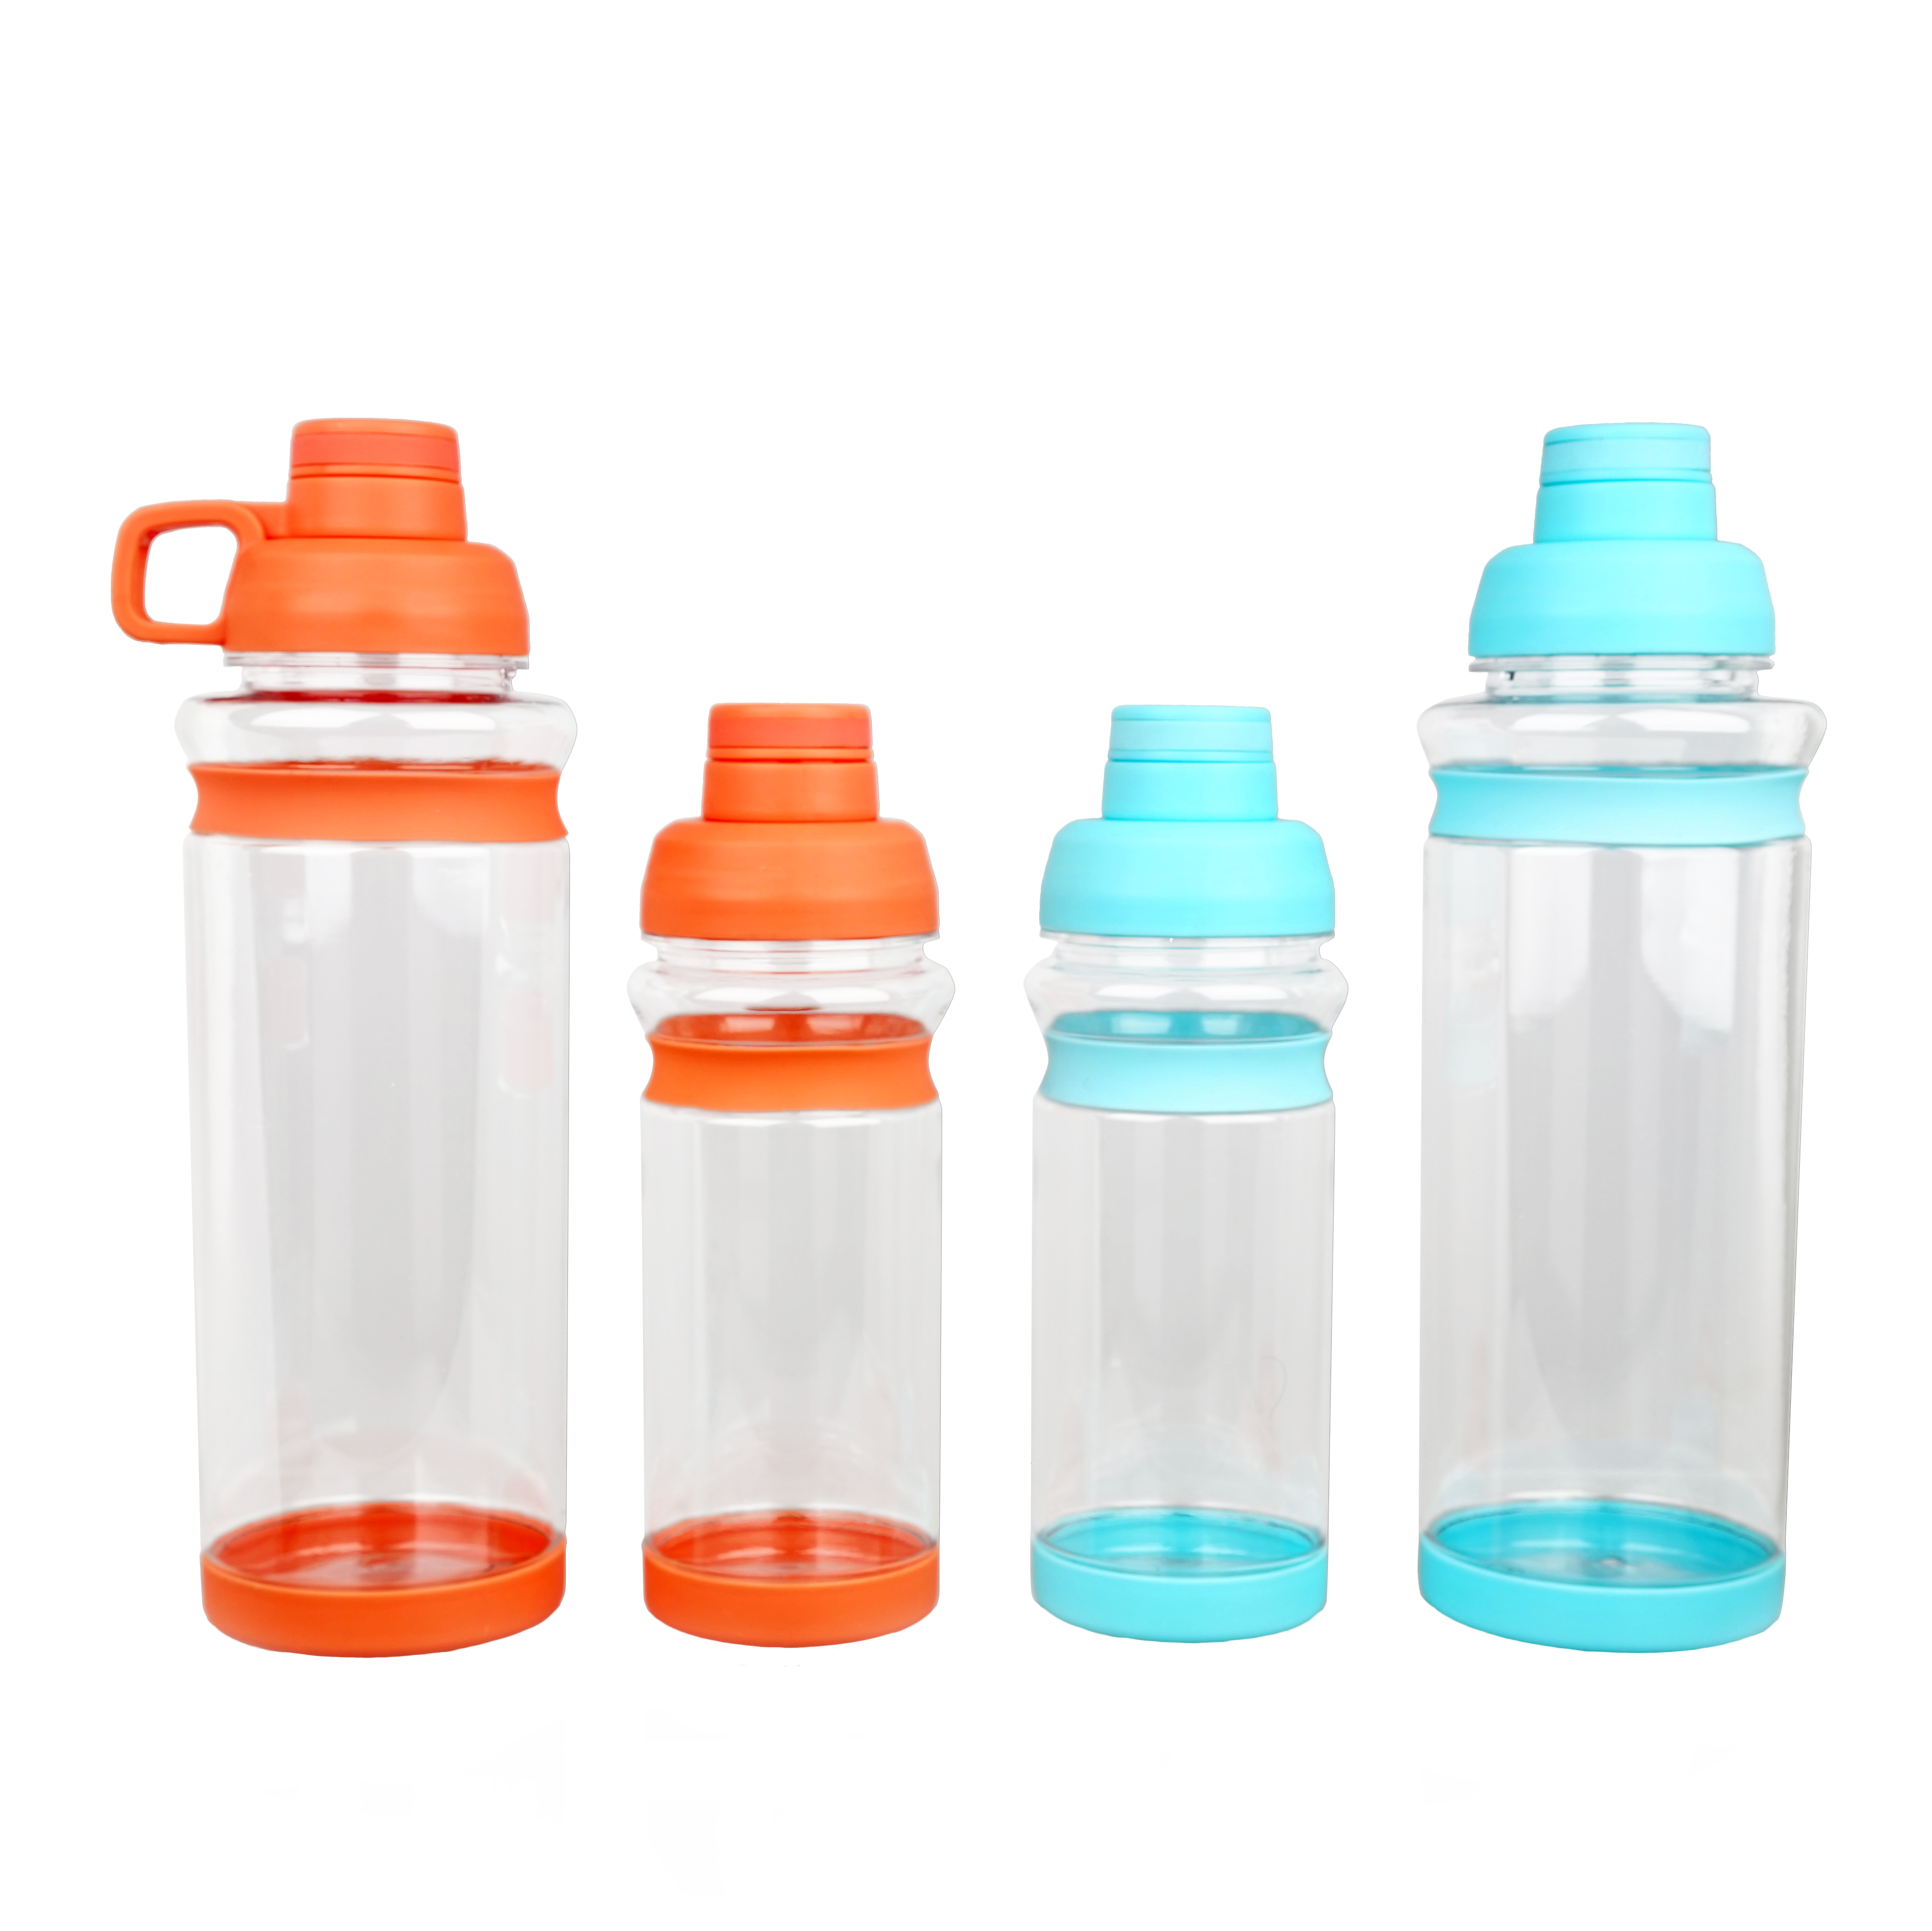 1600ml Big Capacity Water Bottle With Double Cover design BPA Free Plastic Sport Bottles